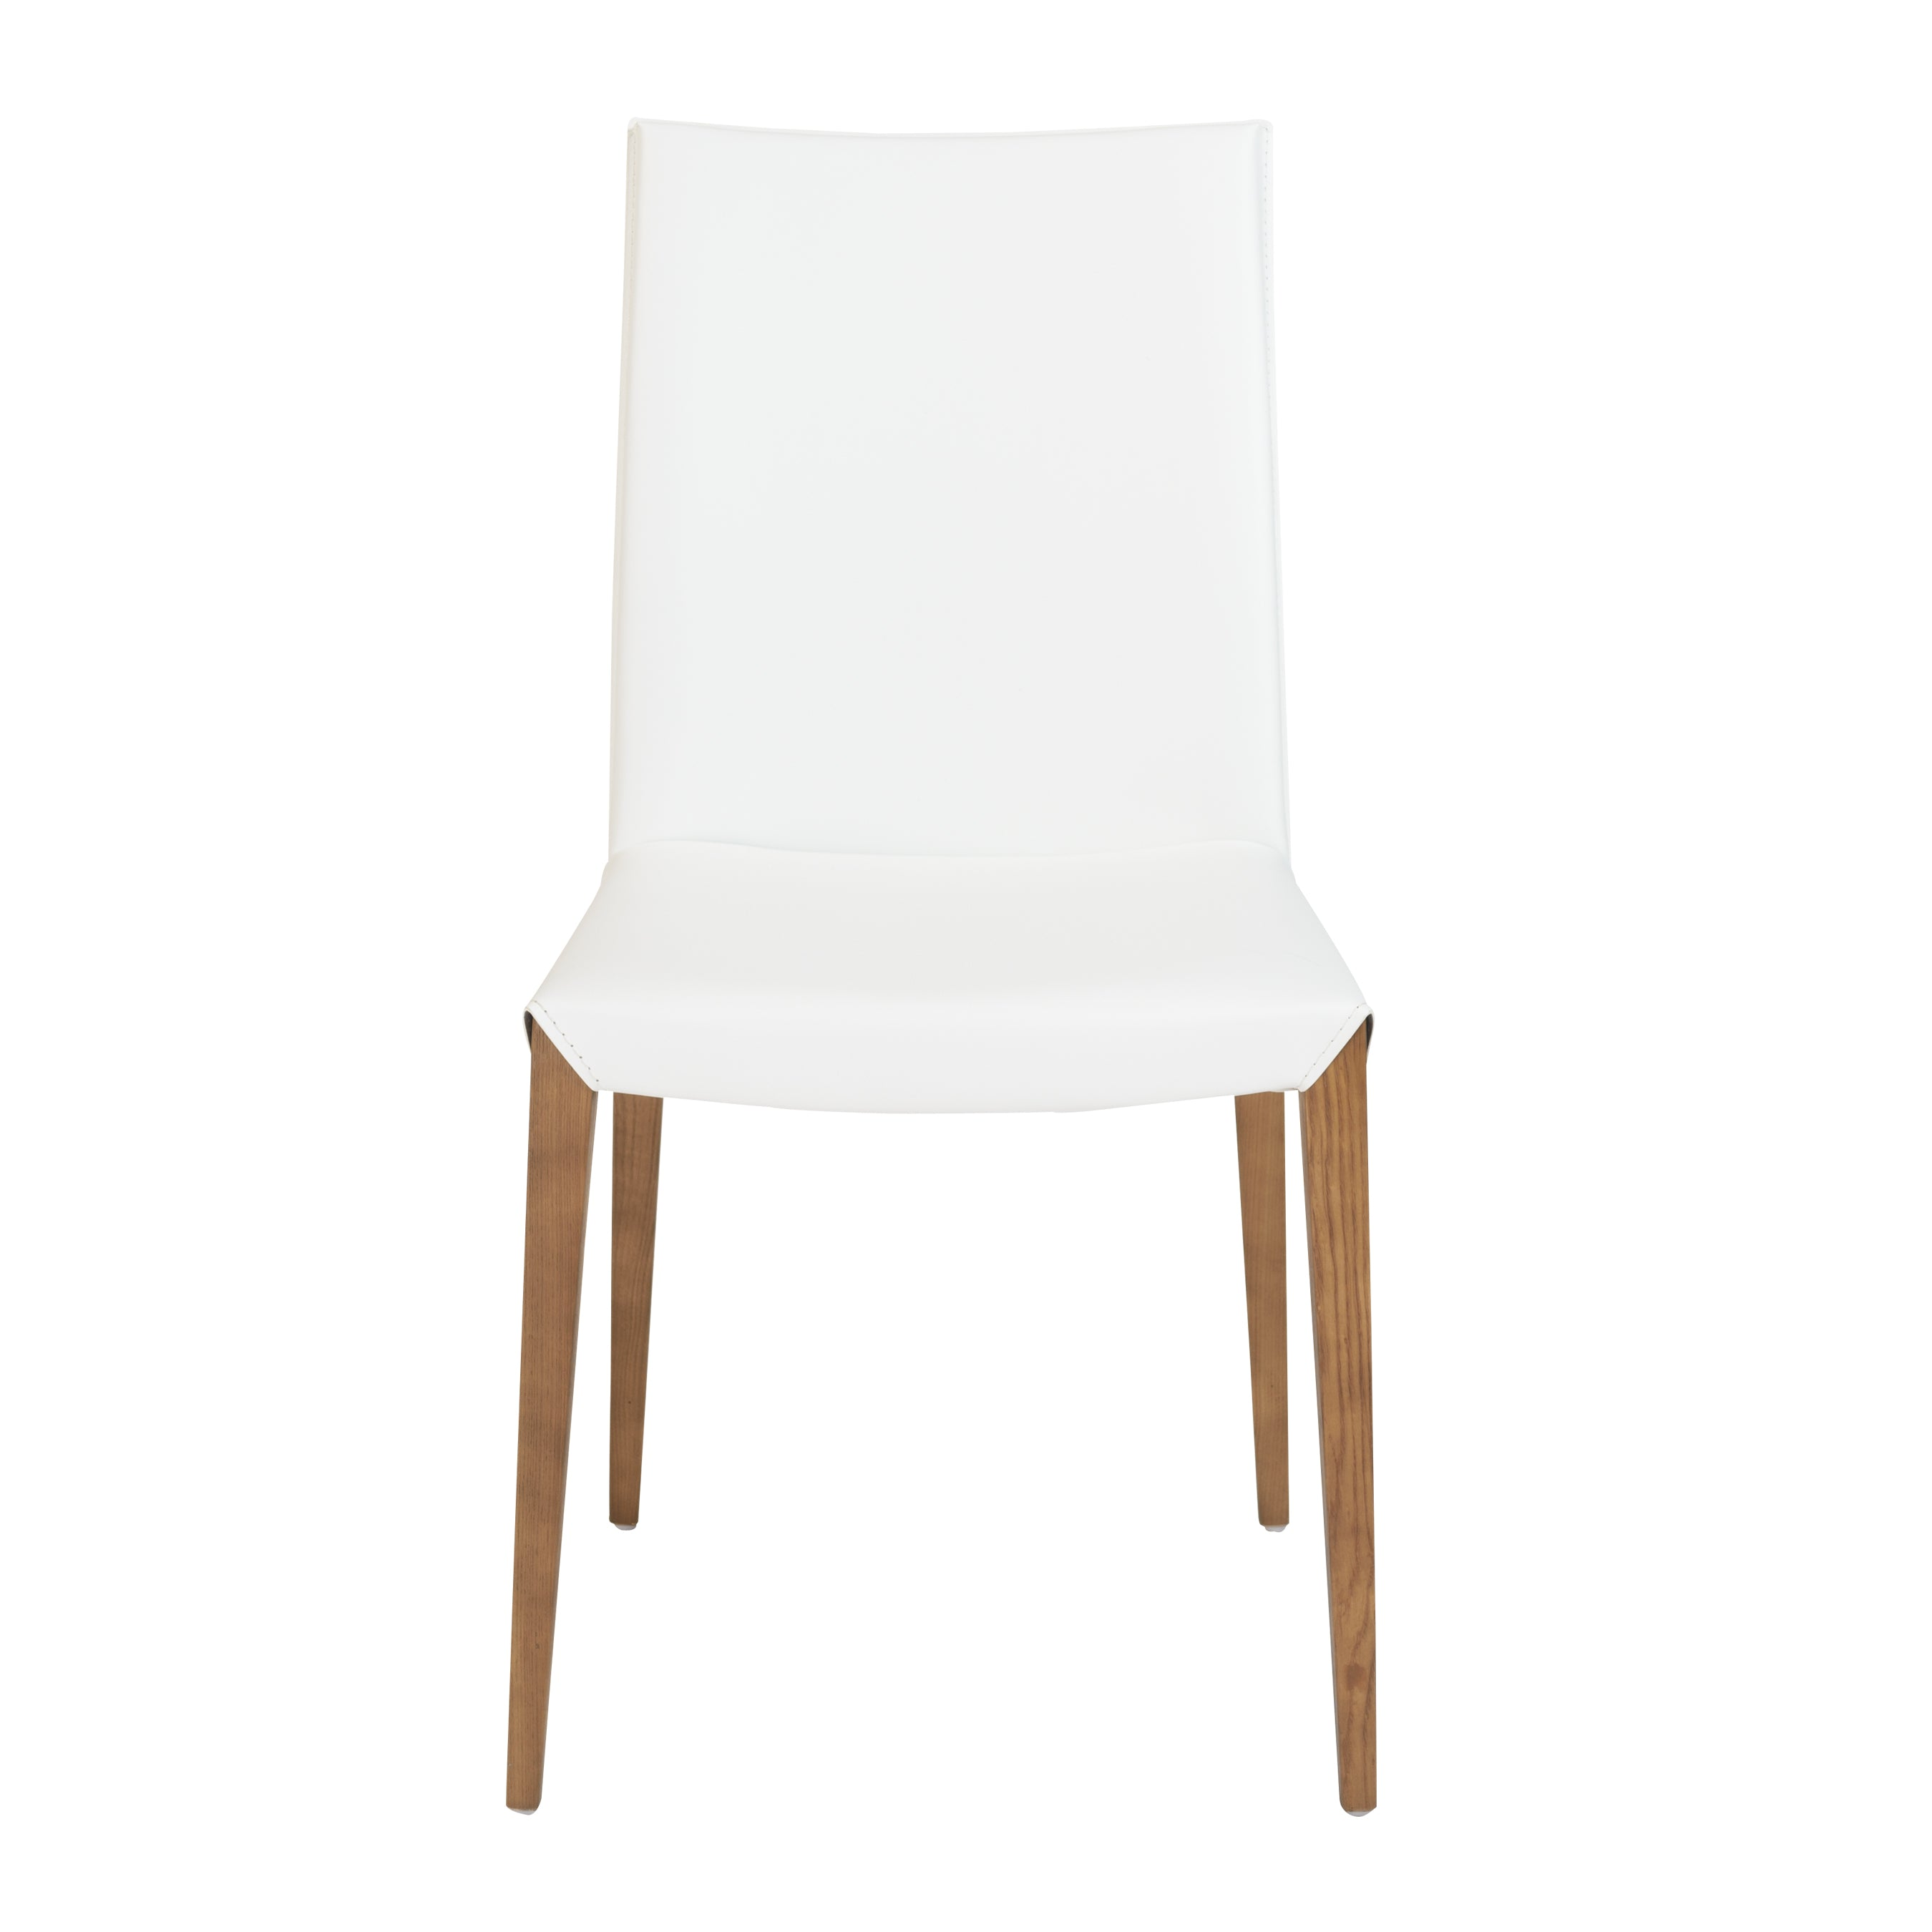 Charming White Leatherette Guest or Conference Chair (Set of 2)